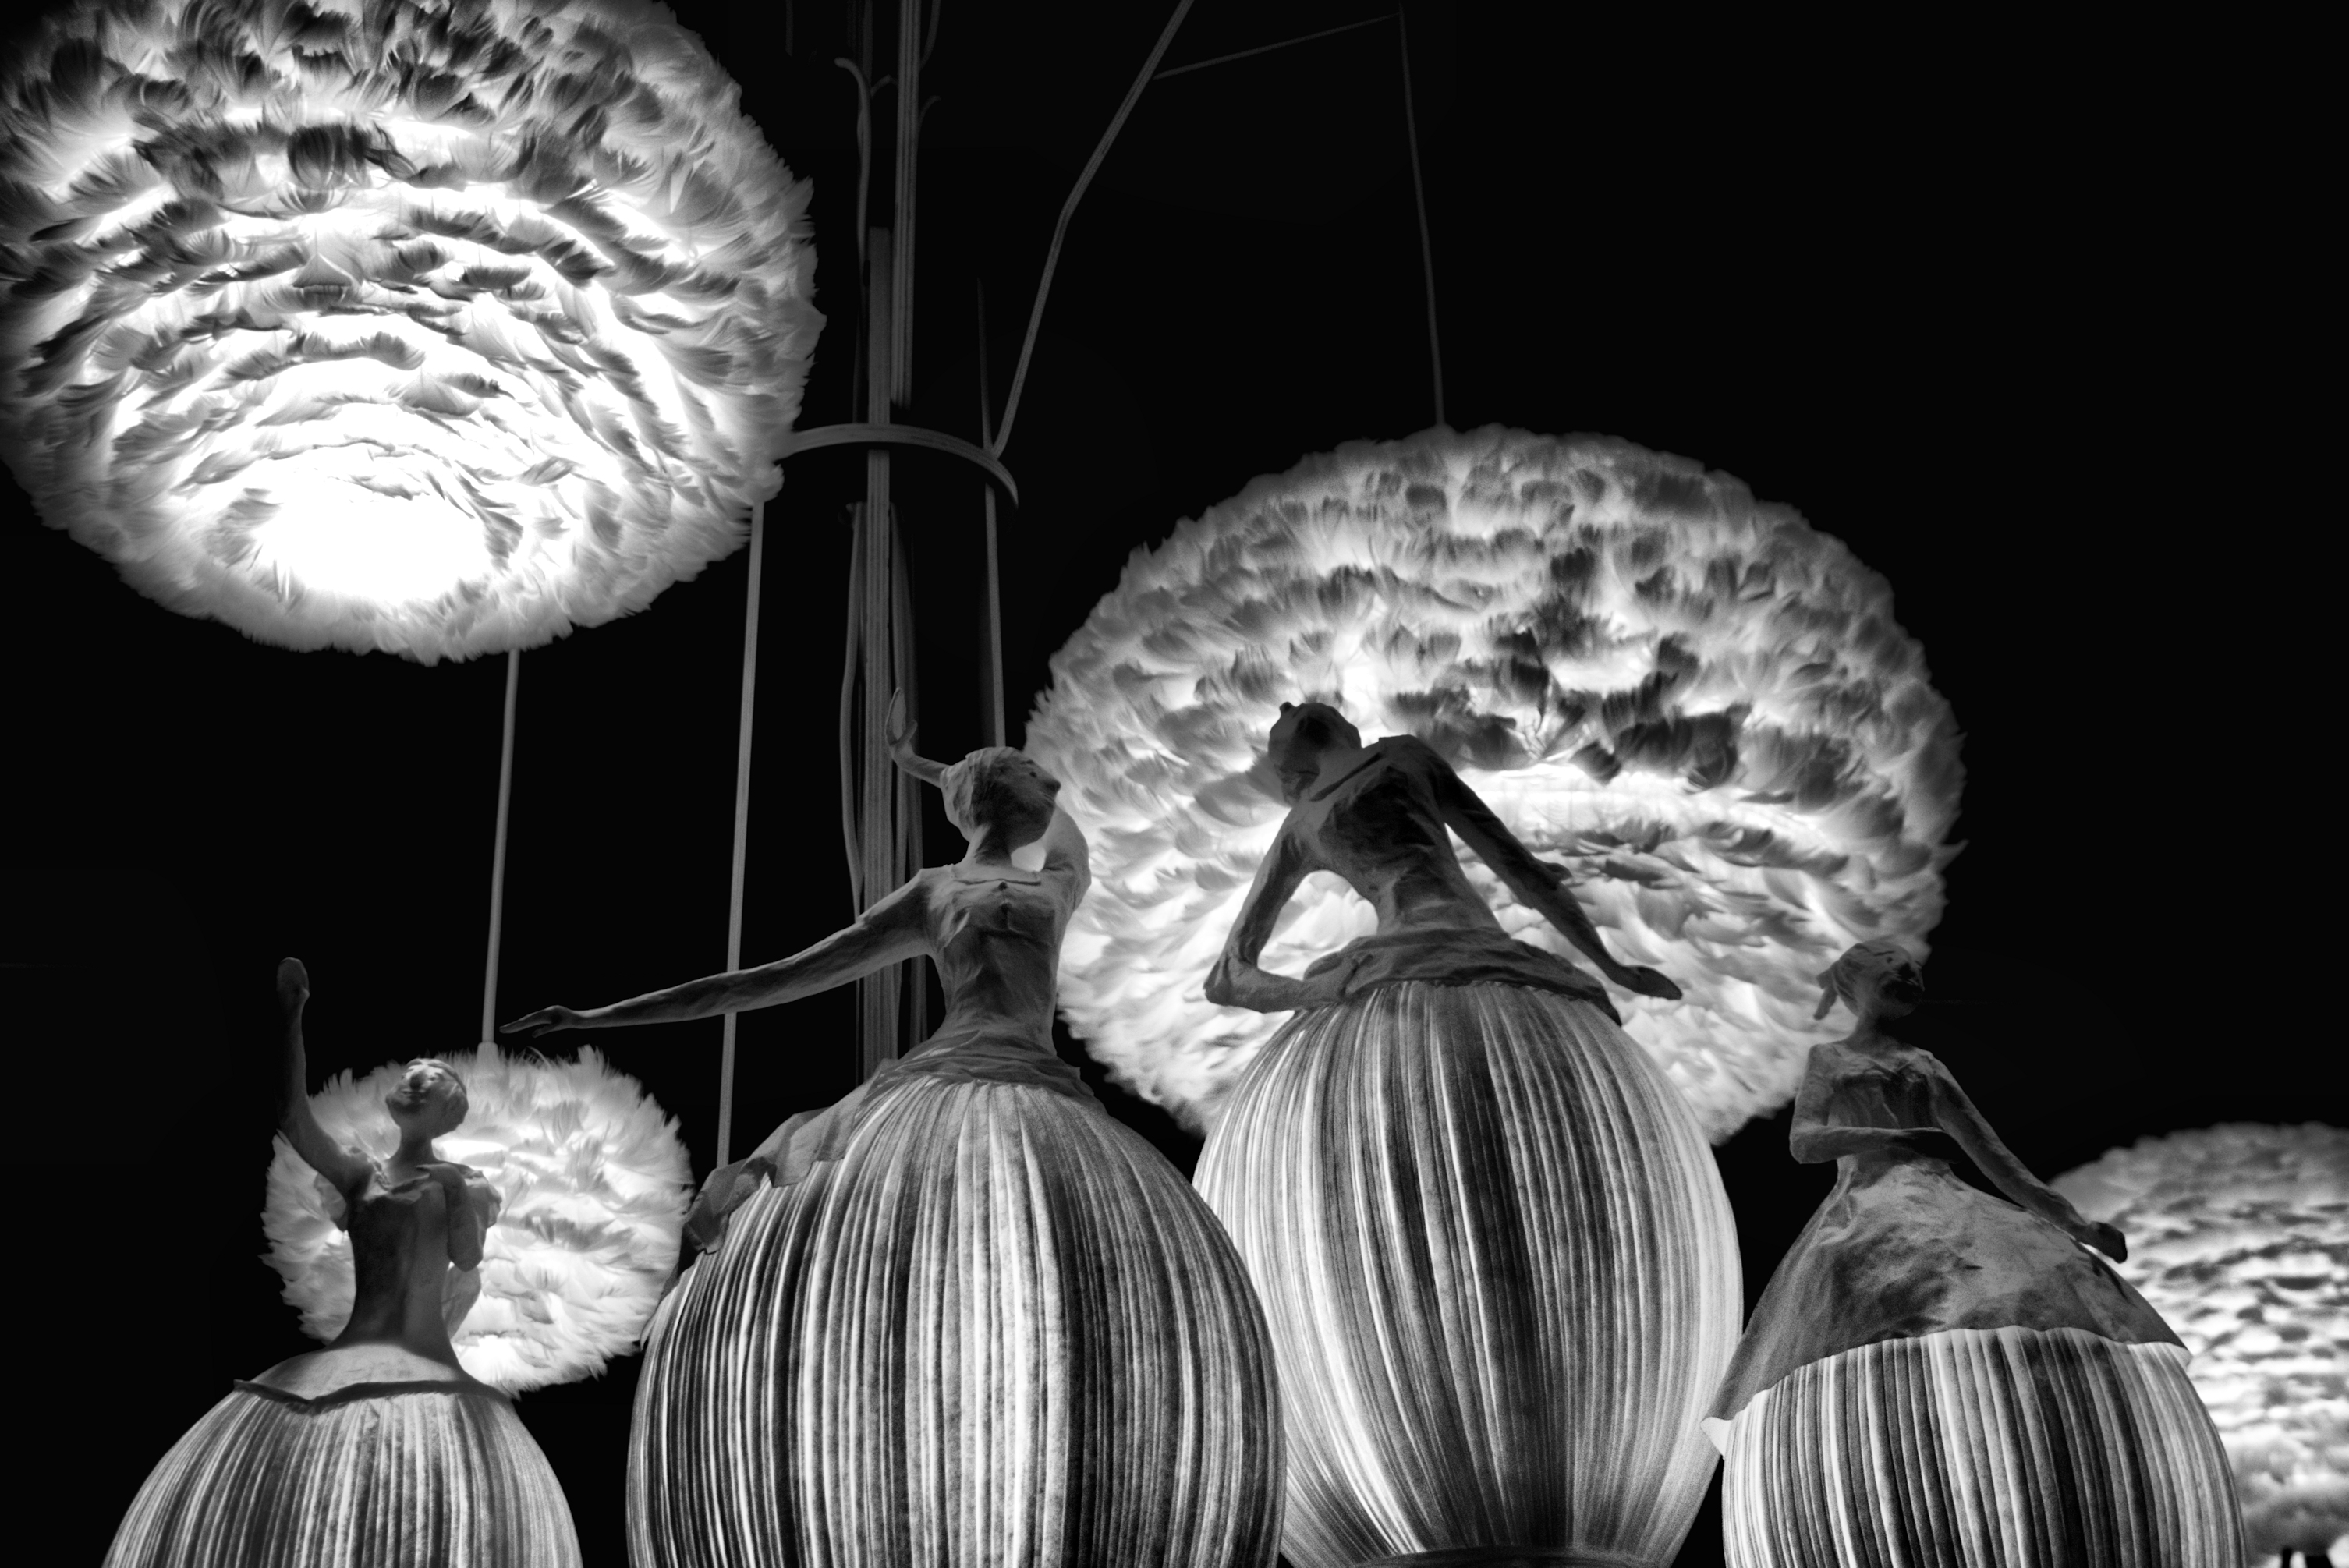 Blalack and white photo of ballerina statues dancing.